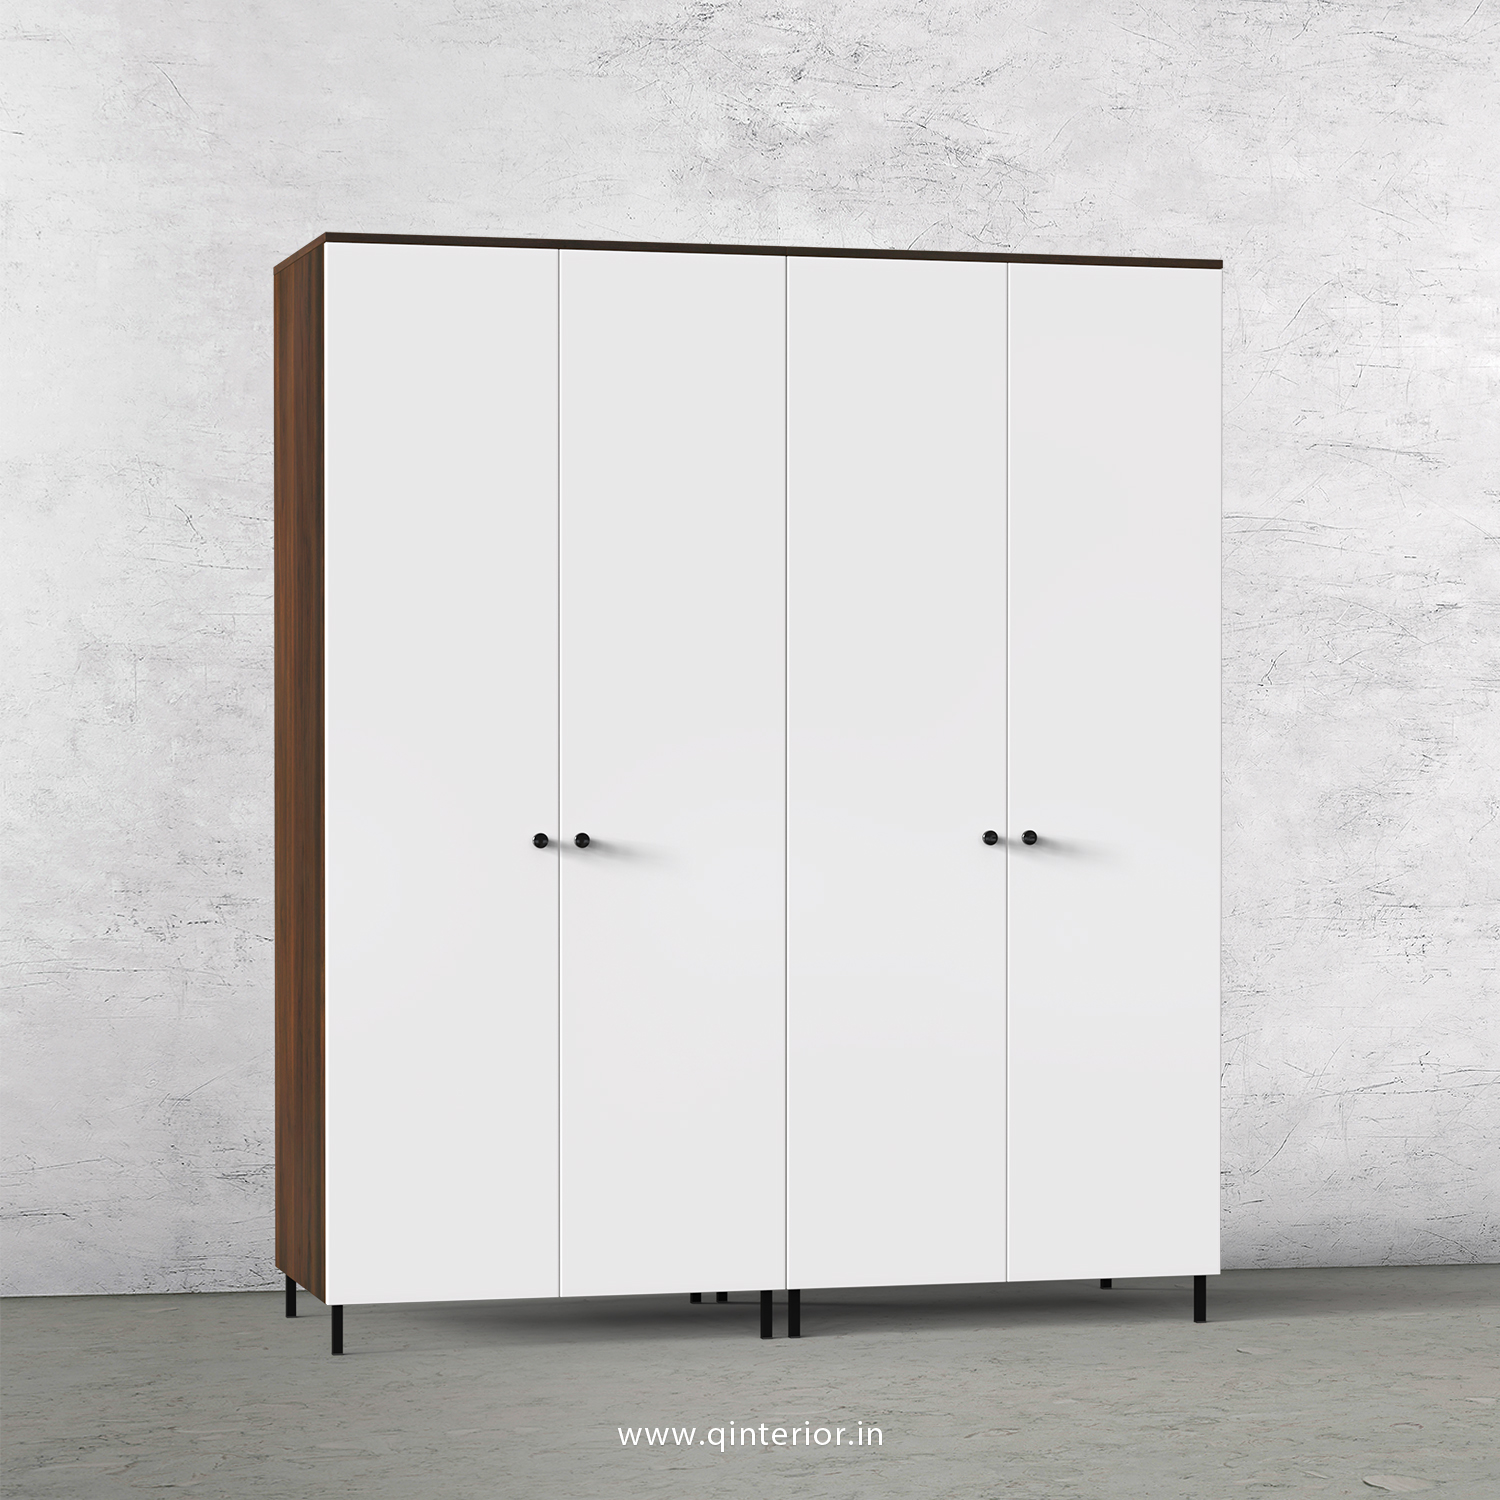 Lambent 4 Door Wardrobe in Walnut and White Finish – FWRD001 C18